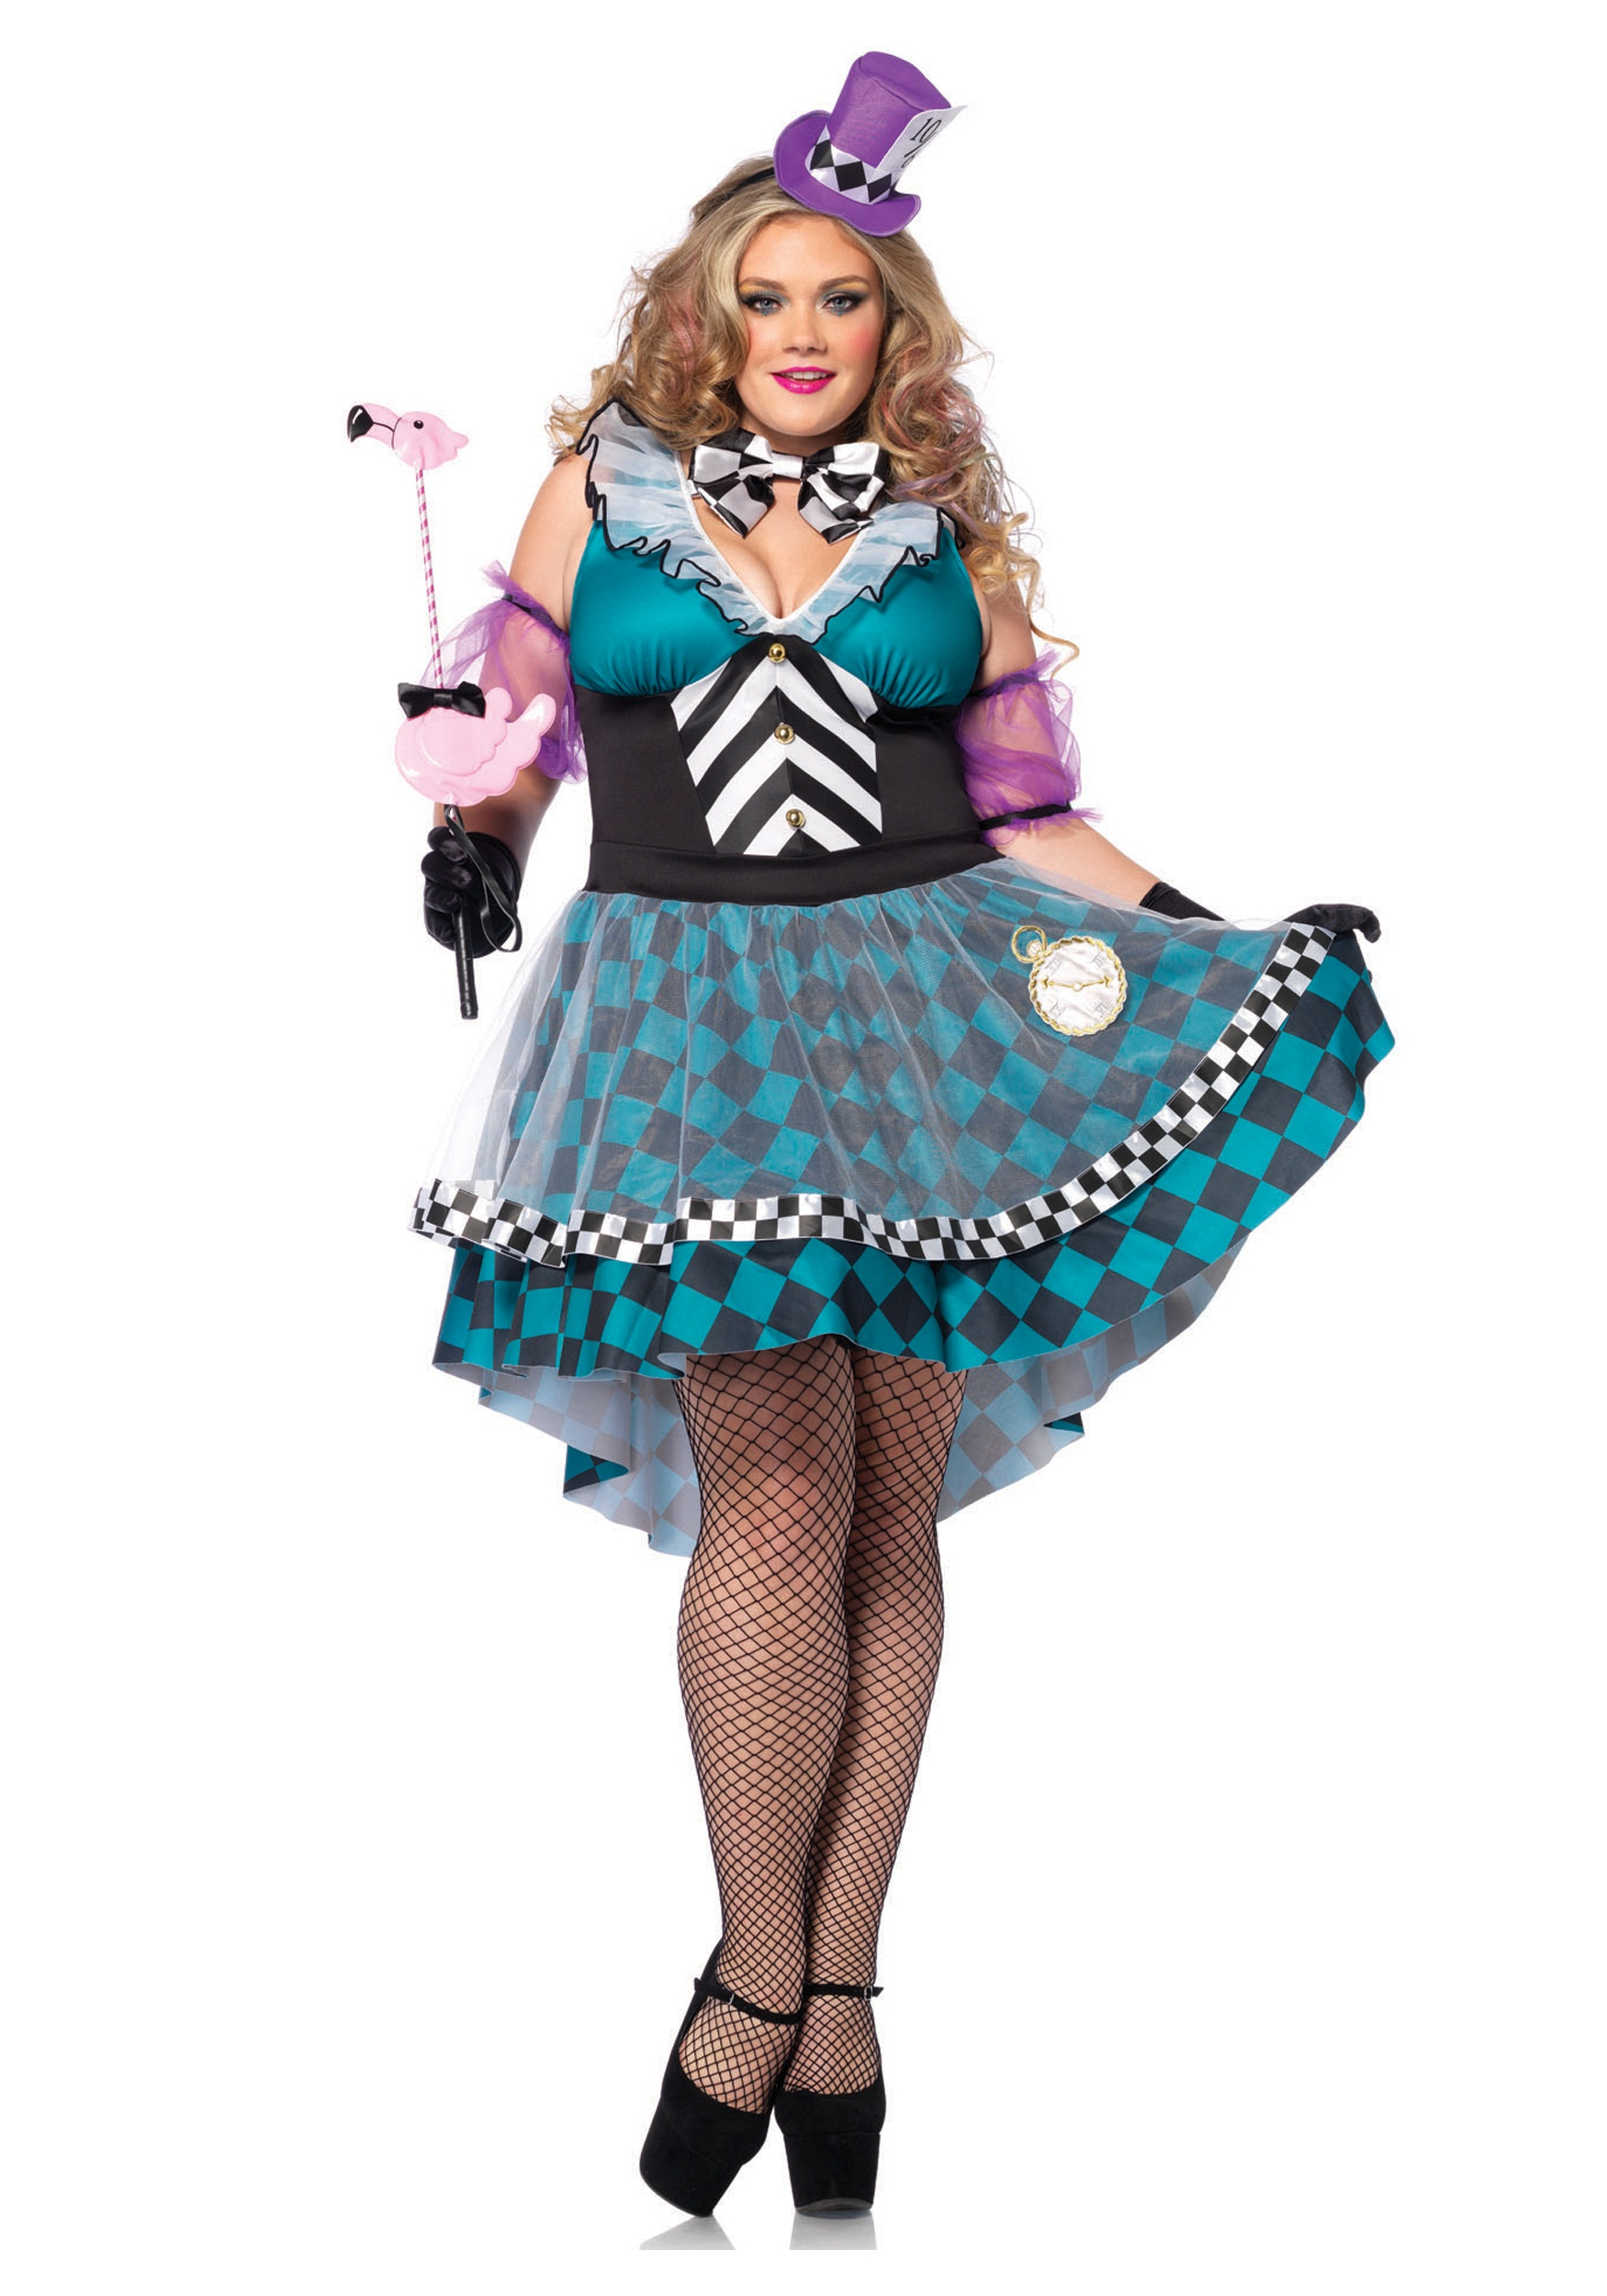 Plus Size Manic Mad Hatter Costume  sc 1 st  Halloween Costumes & Plus Size Manic Mad Hatter Costume - Halloween Costumes